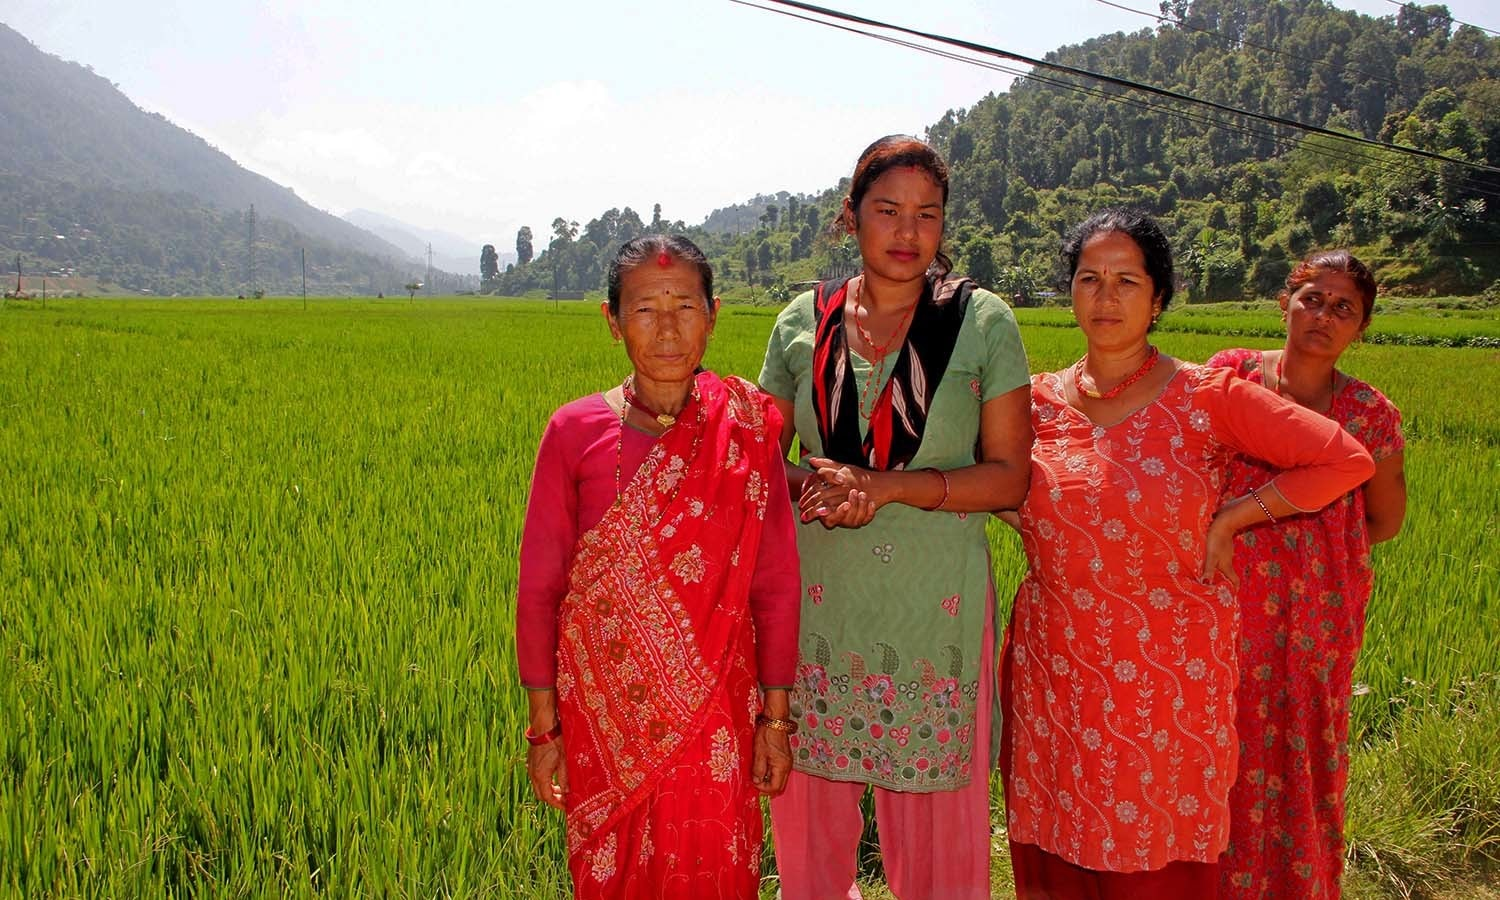 Women farmers stand in a rice field grown with the SRI method in a climate-smart village in Nepal. — Photo by author